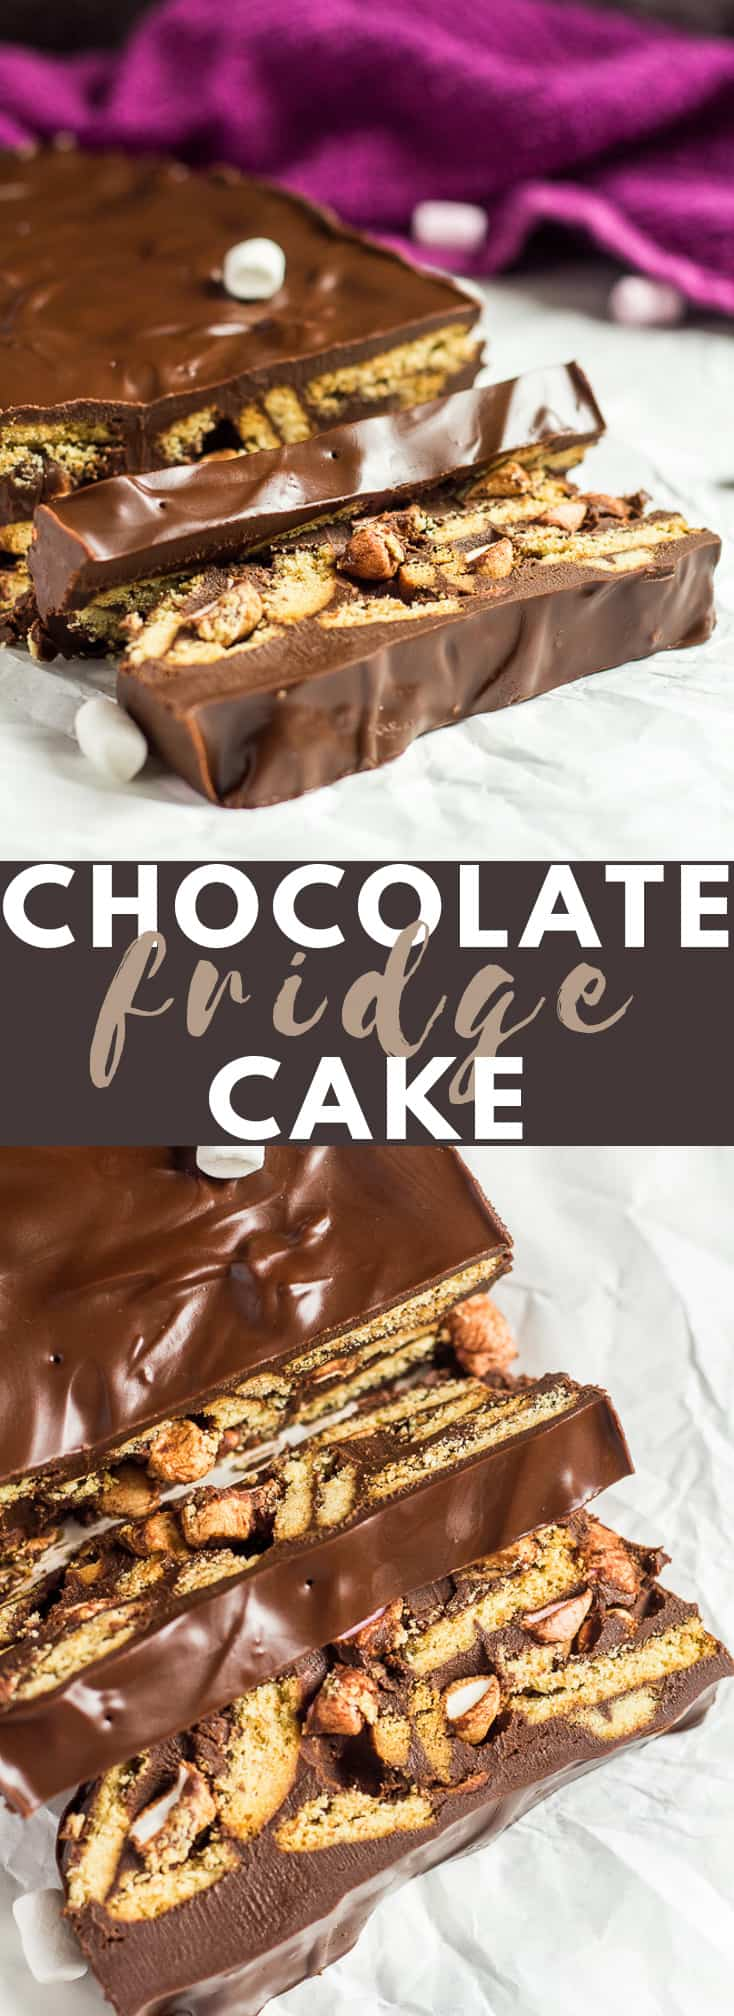 Chocolate Fridge Cake - Digestive biscuit pieces, and mini marshmallows coated in a creamy, thick dark chocolate. The perfect no-bake treat! #chocolate #fridgecake #nobake #recipe